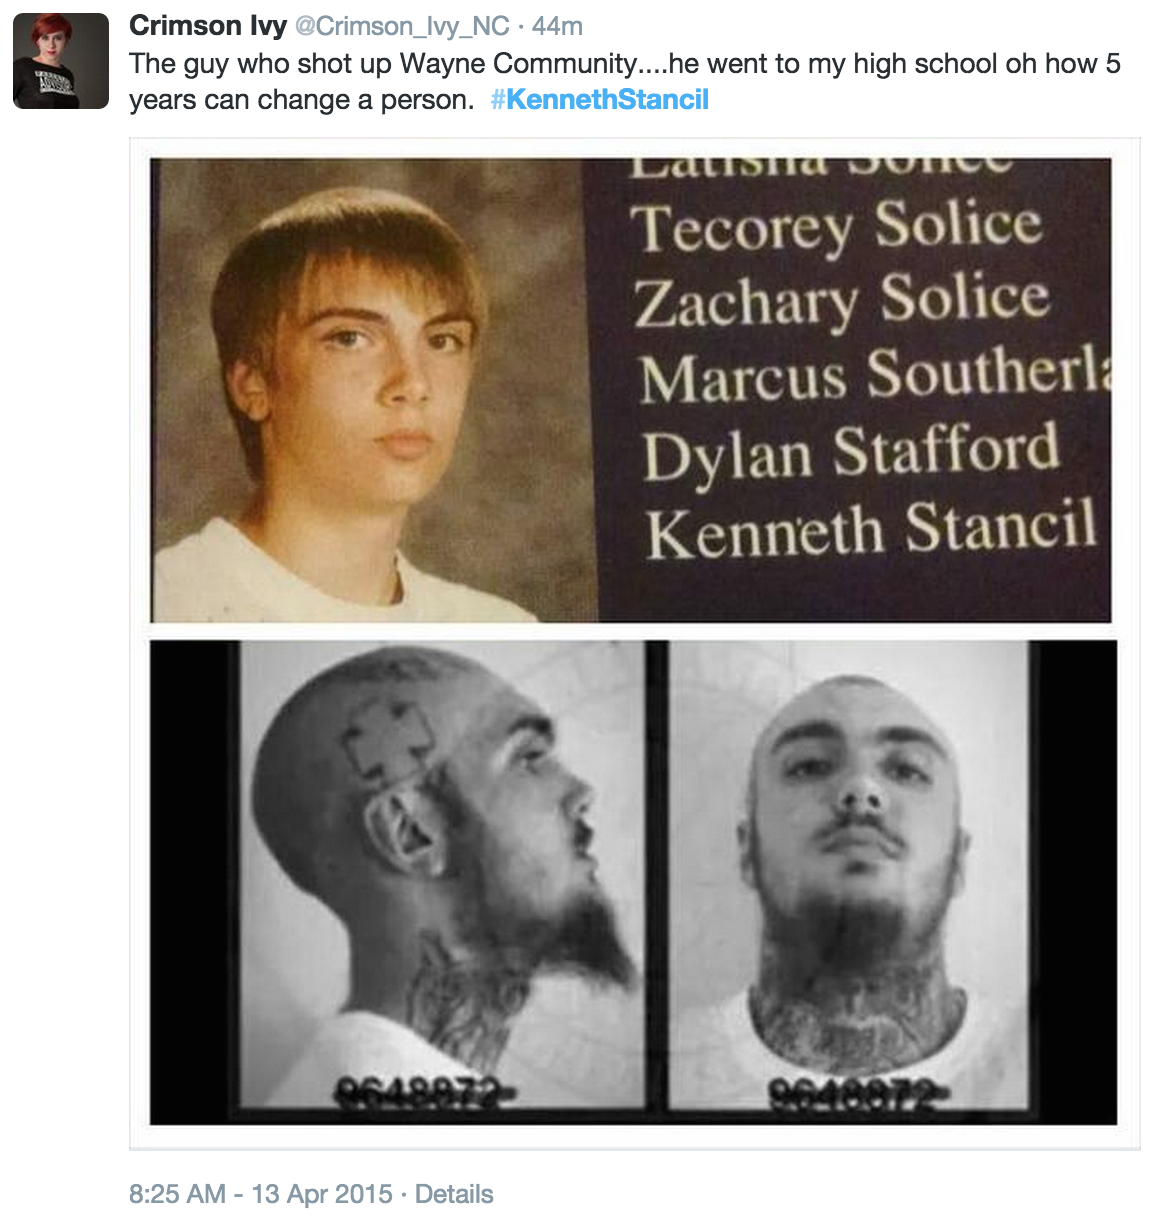 Alleged yearbook photo of Kenneth Stancil as a high school freshman and alleged current photo, from Twitter user Crimson_Ivy_NC (src)